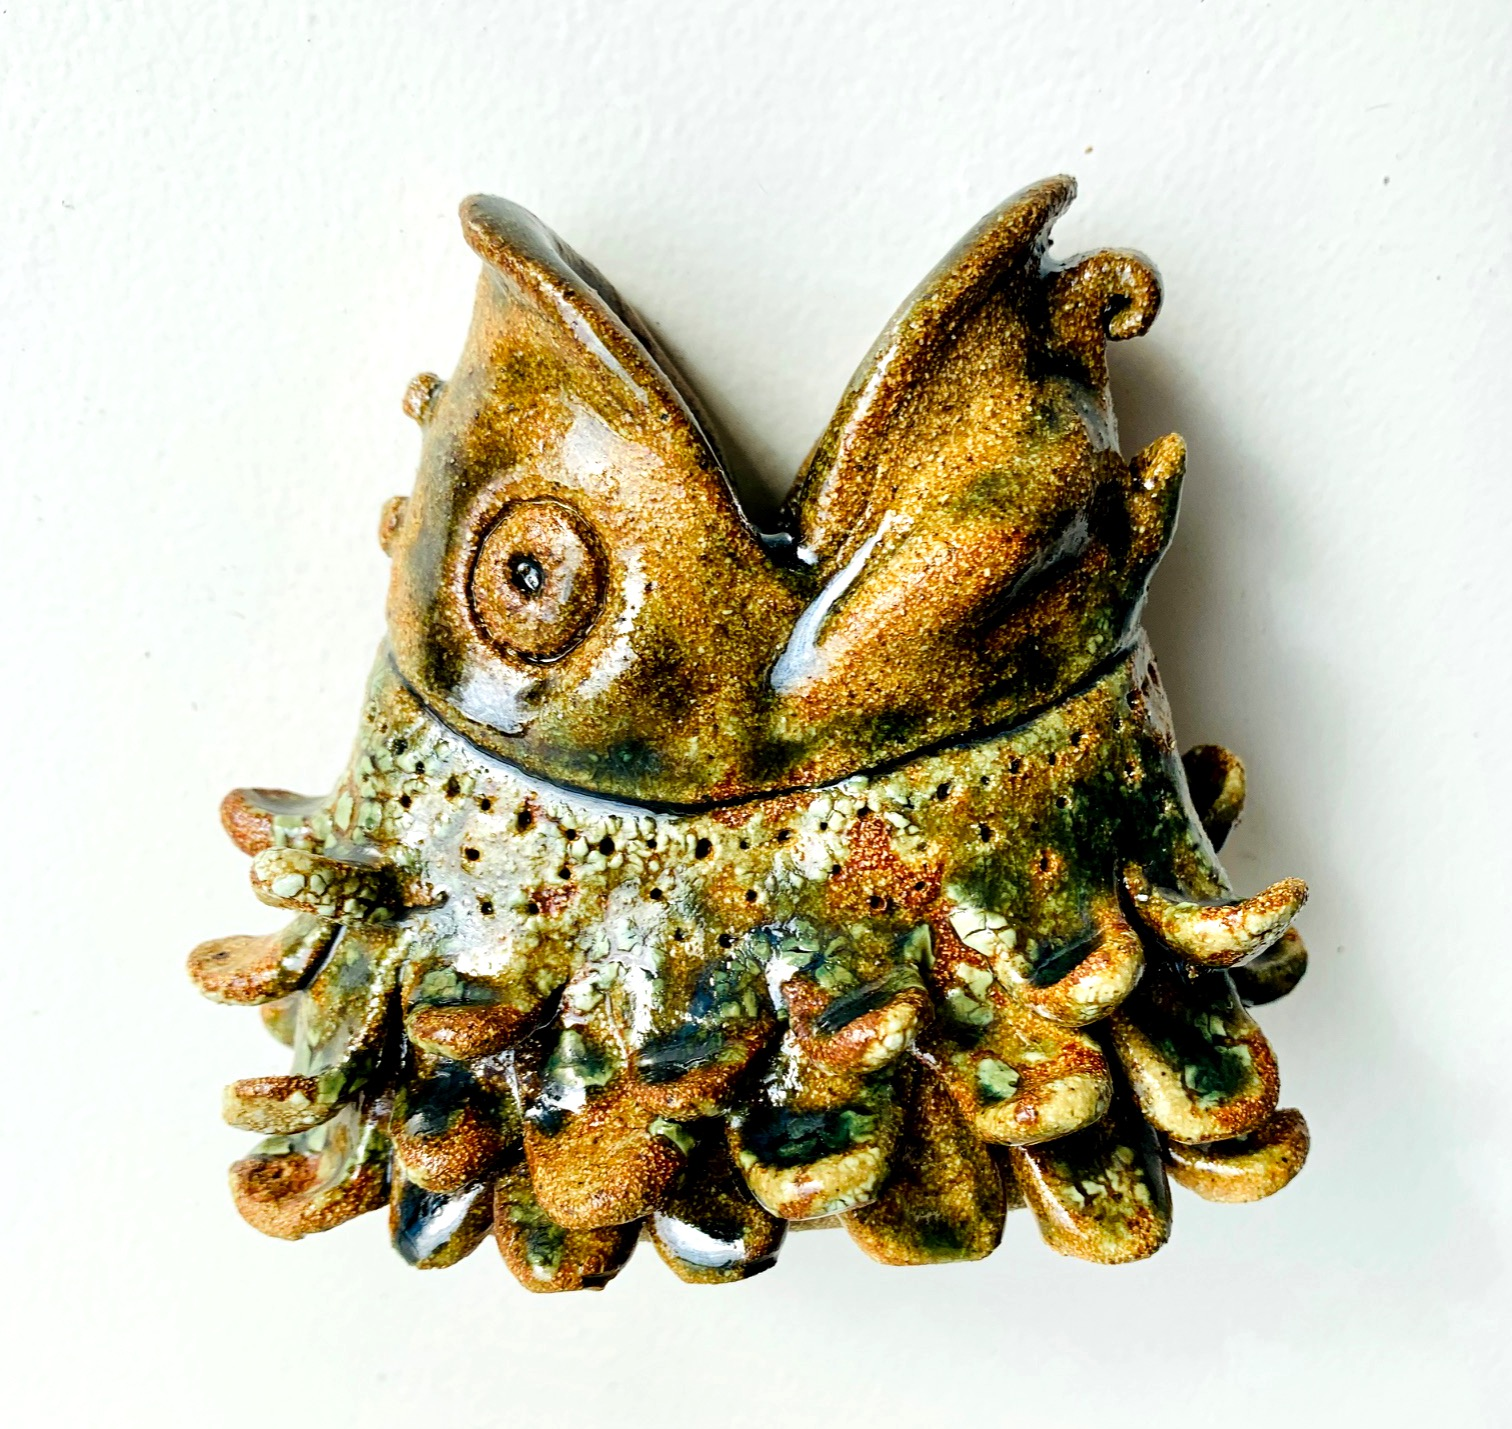 My fish sculpture - SOLD